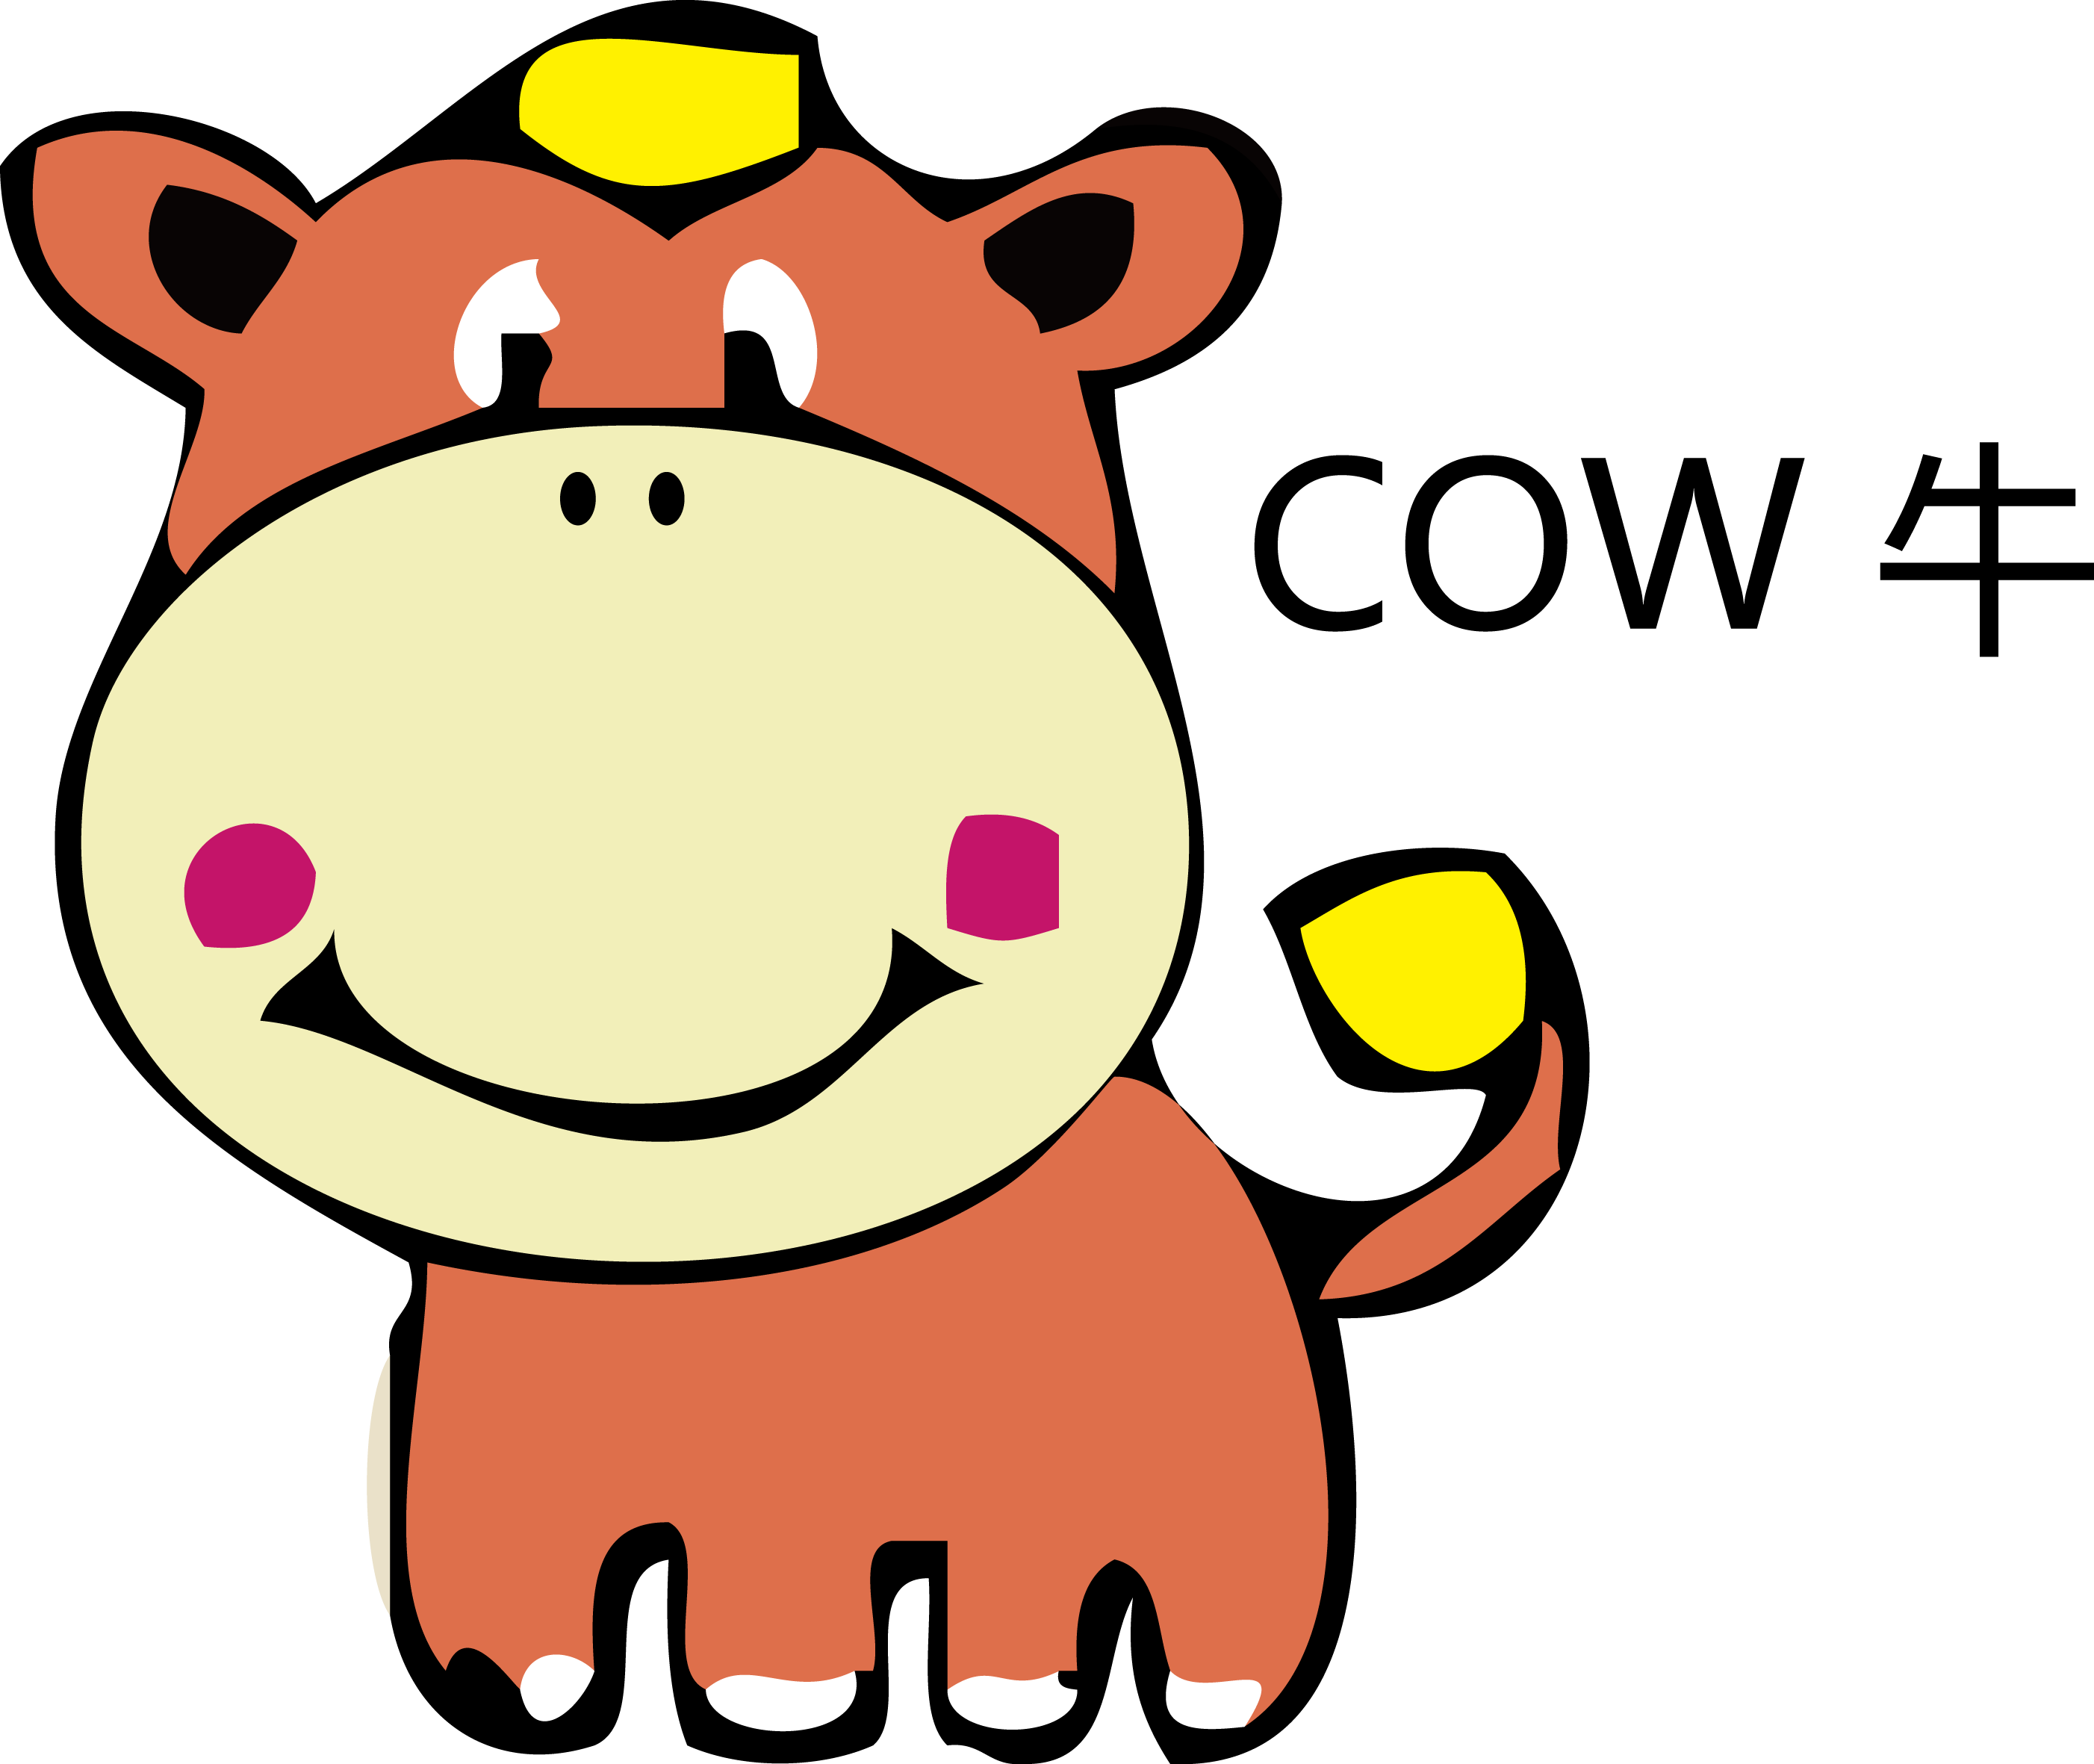 Cartoon Cow Clipart at GetDrawings com | Free for personal